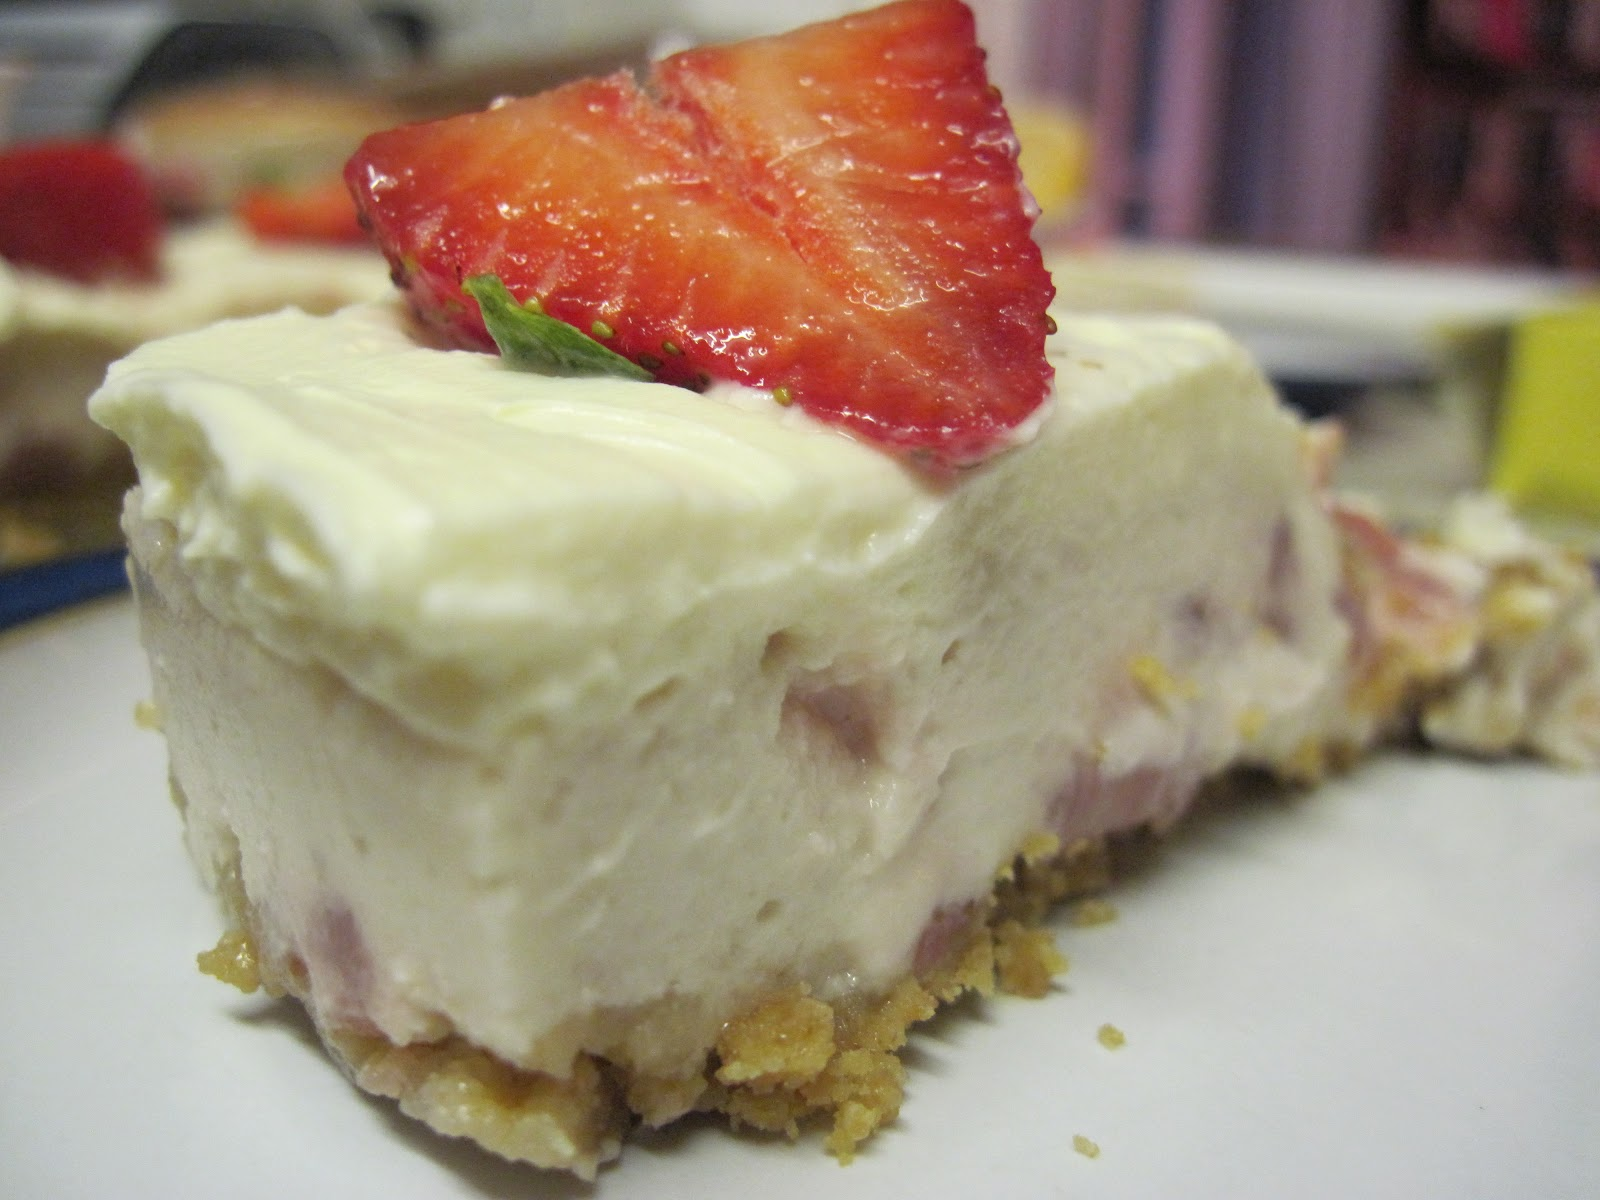 The Sugar Lump: Strawberries & Cream Cheesecake